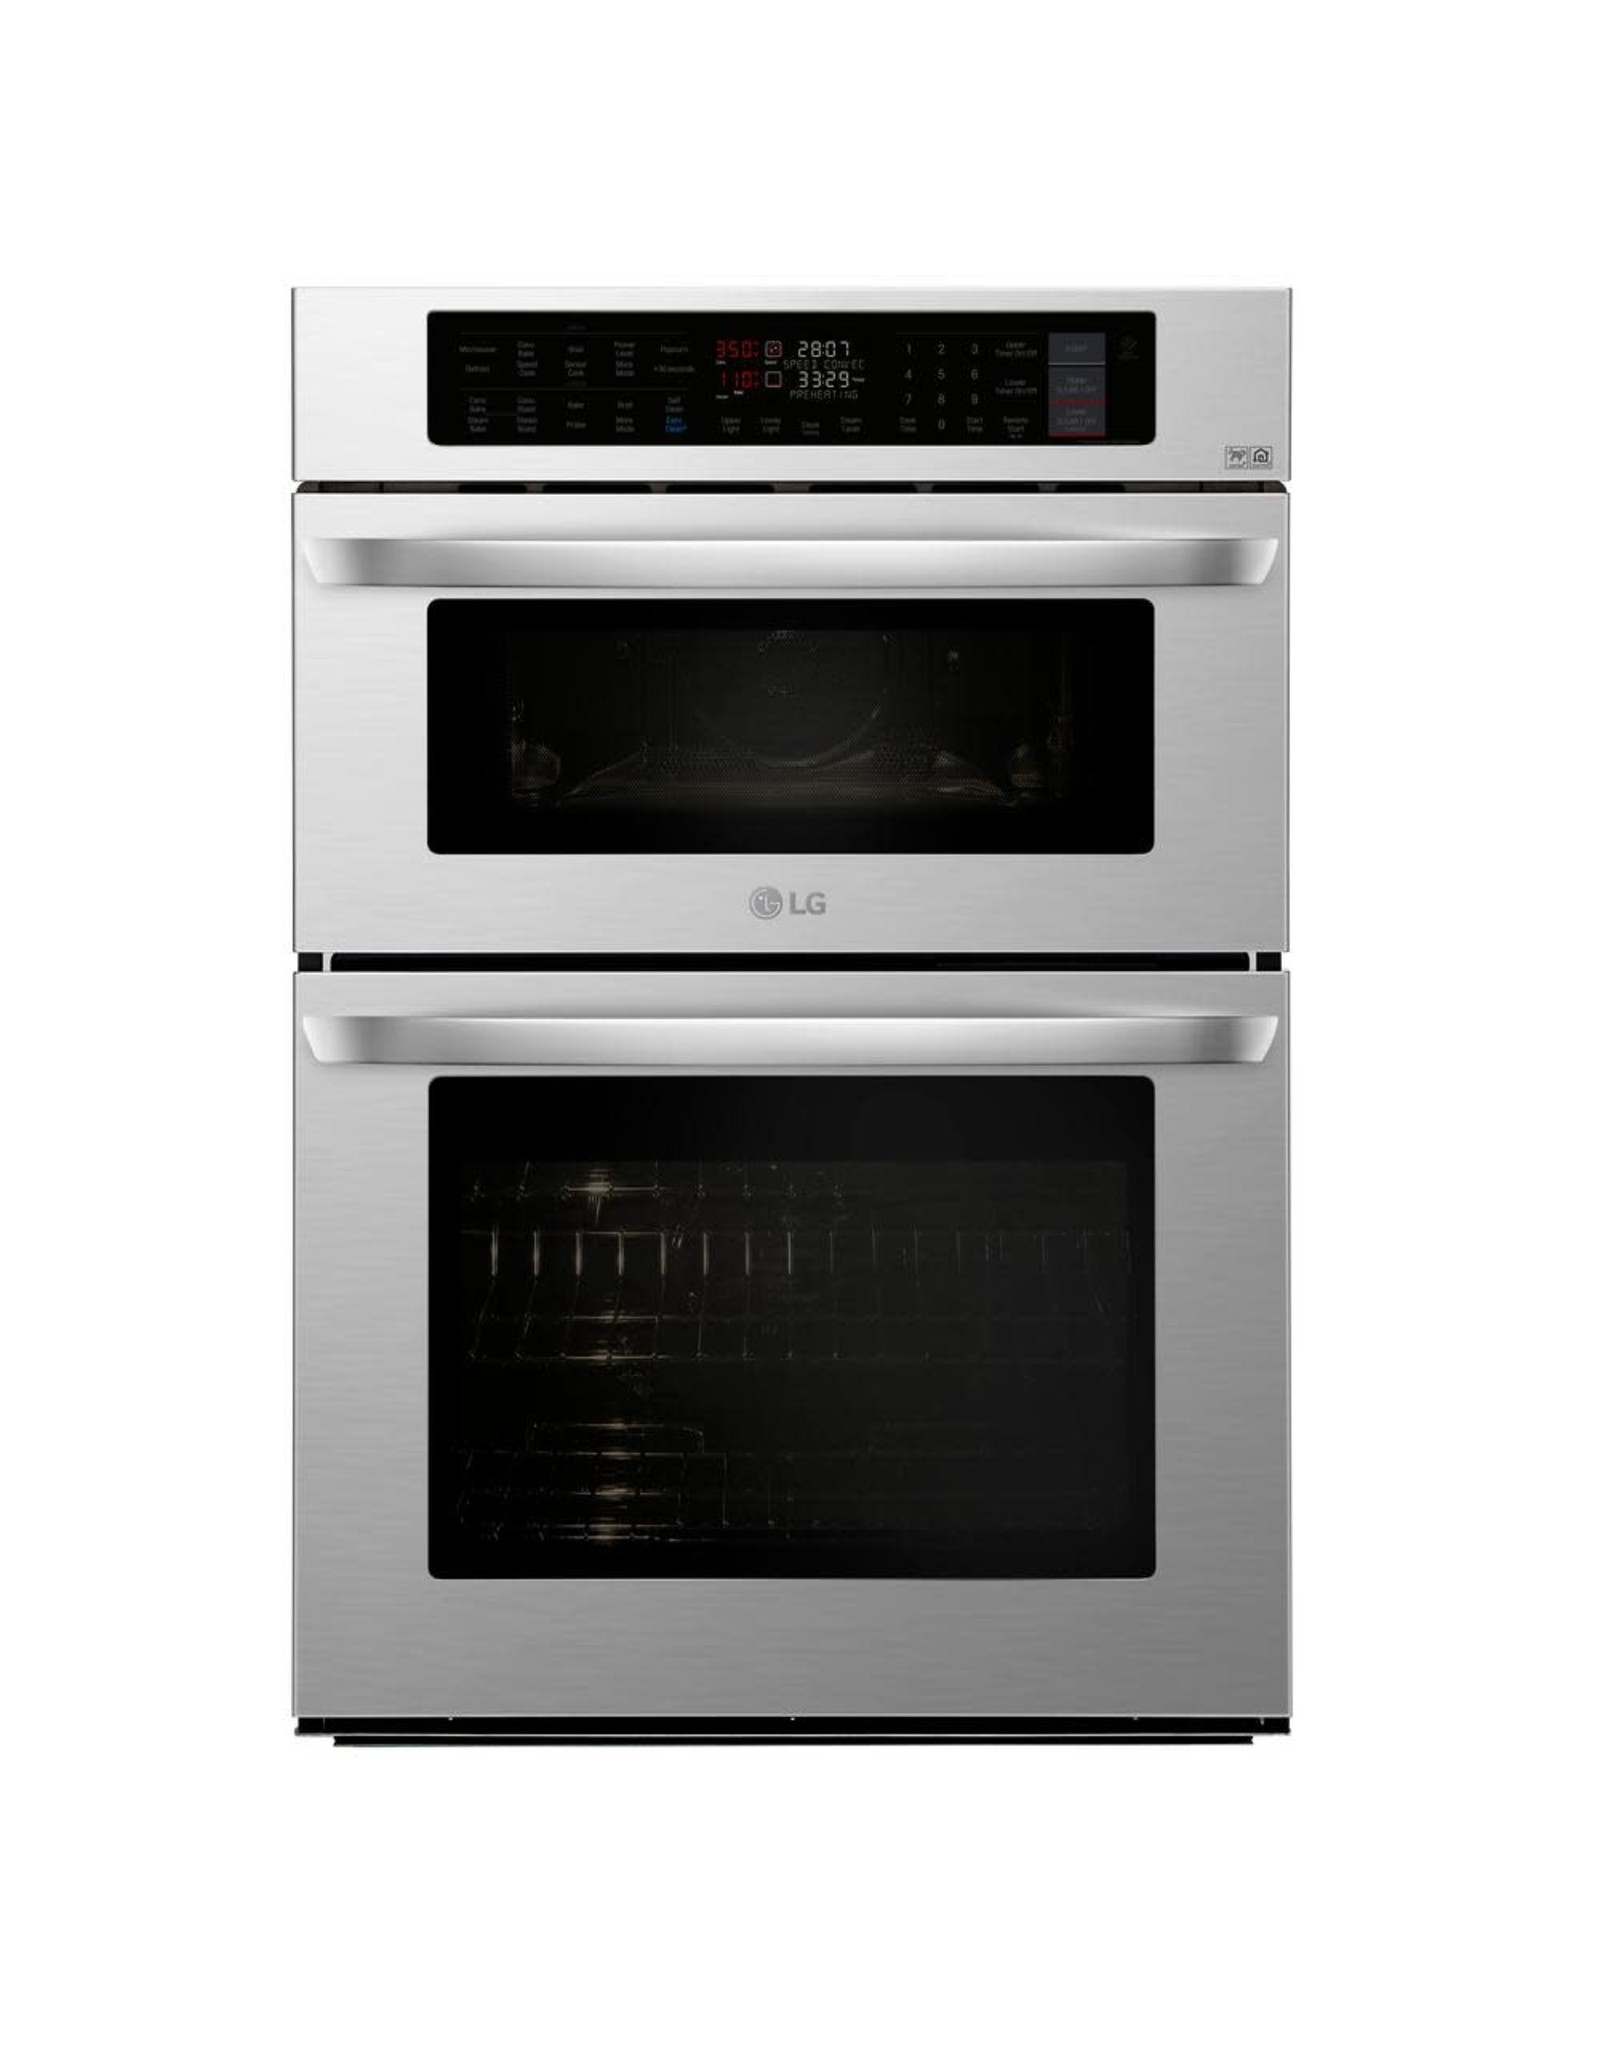 LG Electronics LWC3063ST 30 in. Electric Convection and EasyClean Wall Oven with Built-In Microwave in Stainless Steel